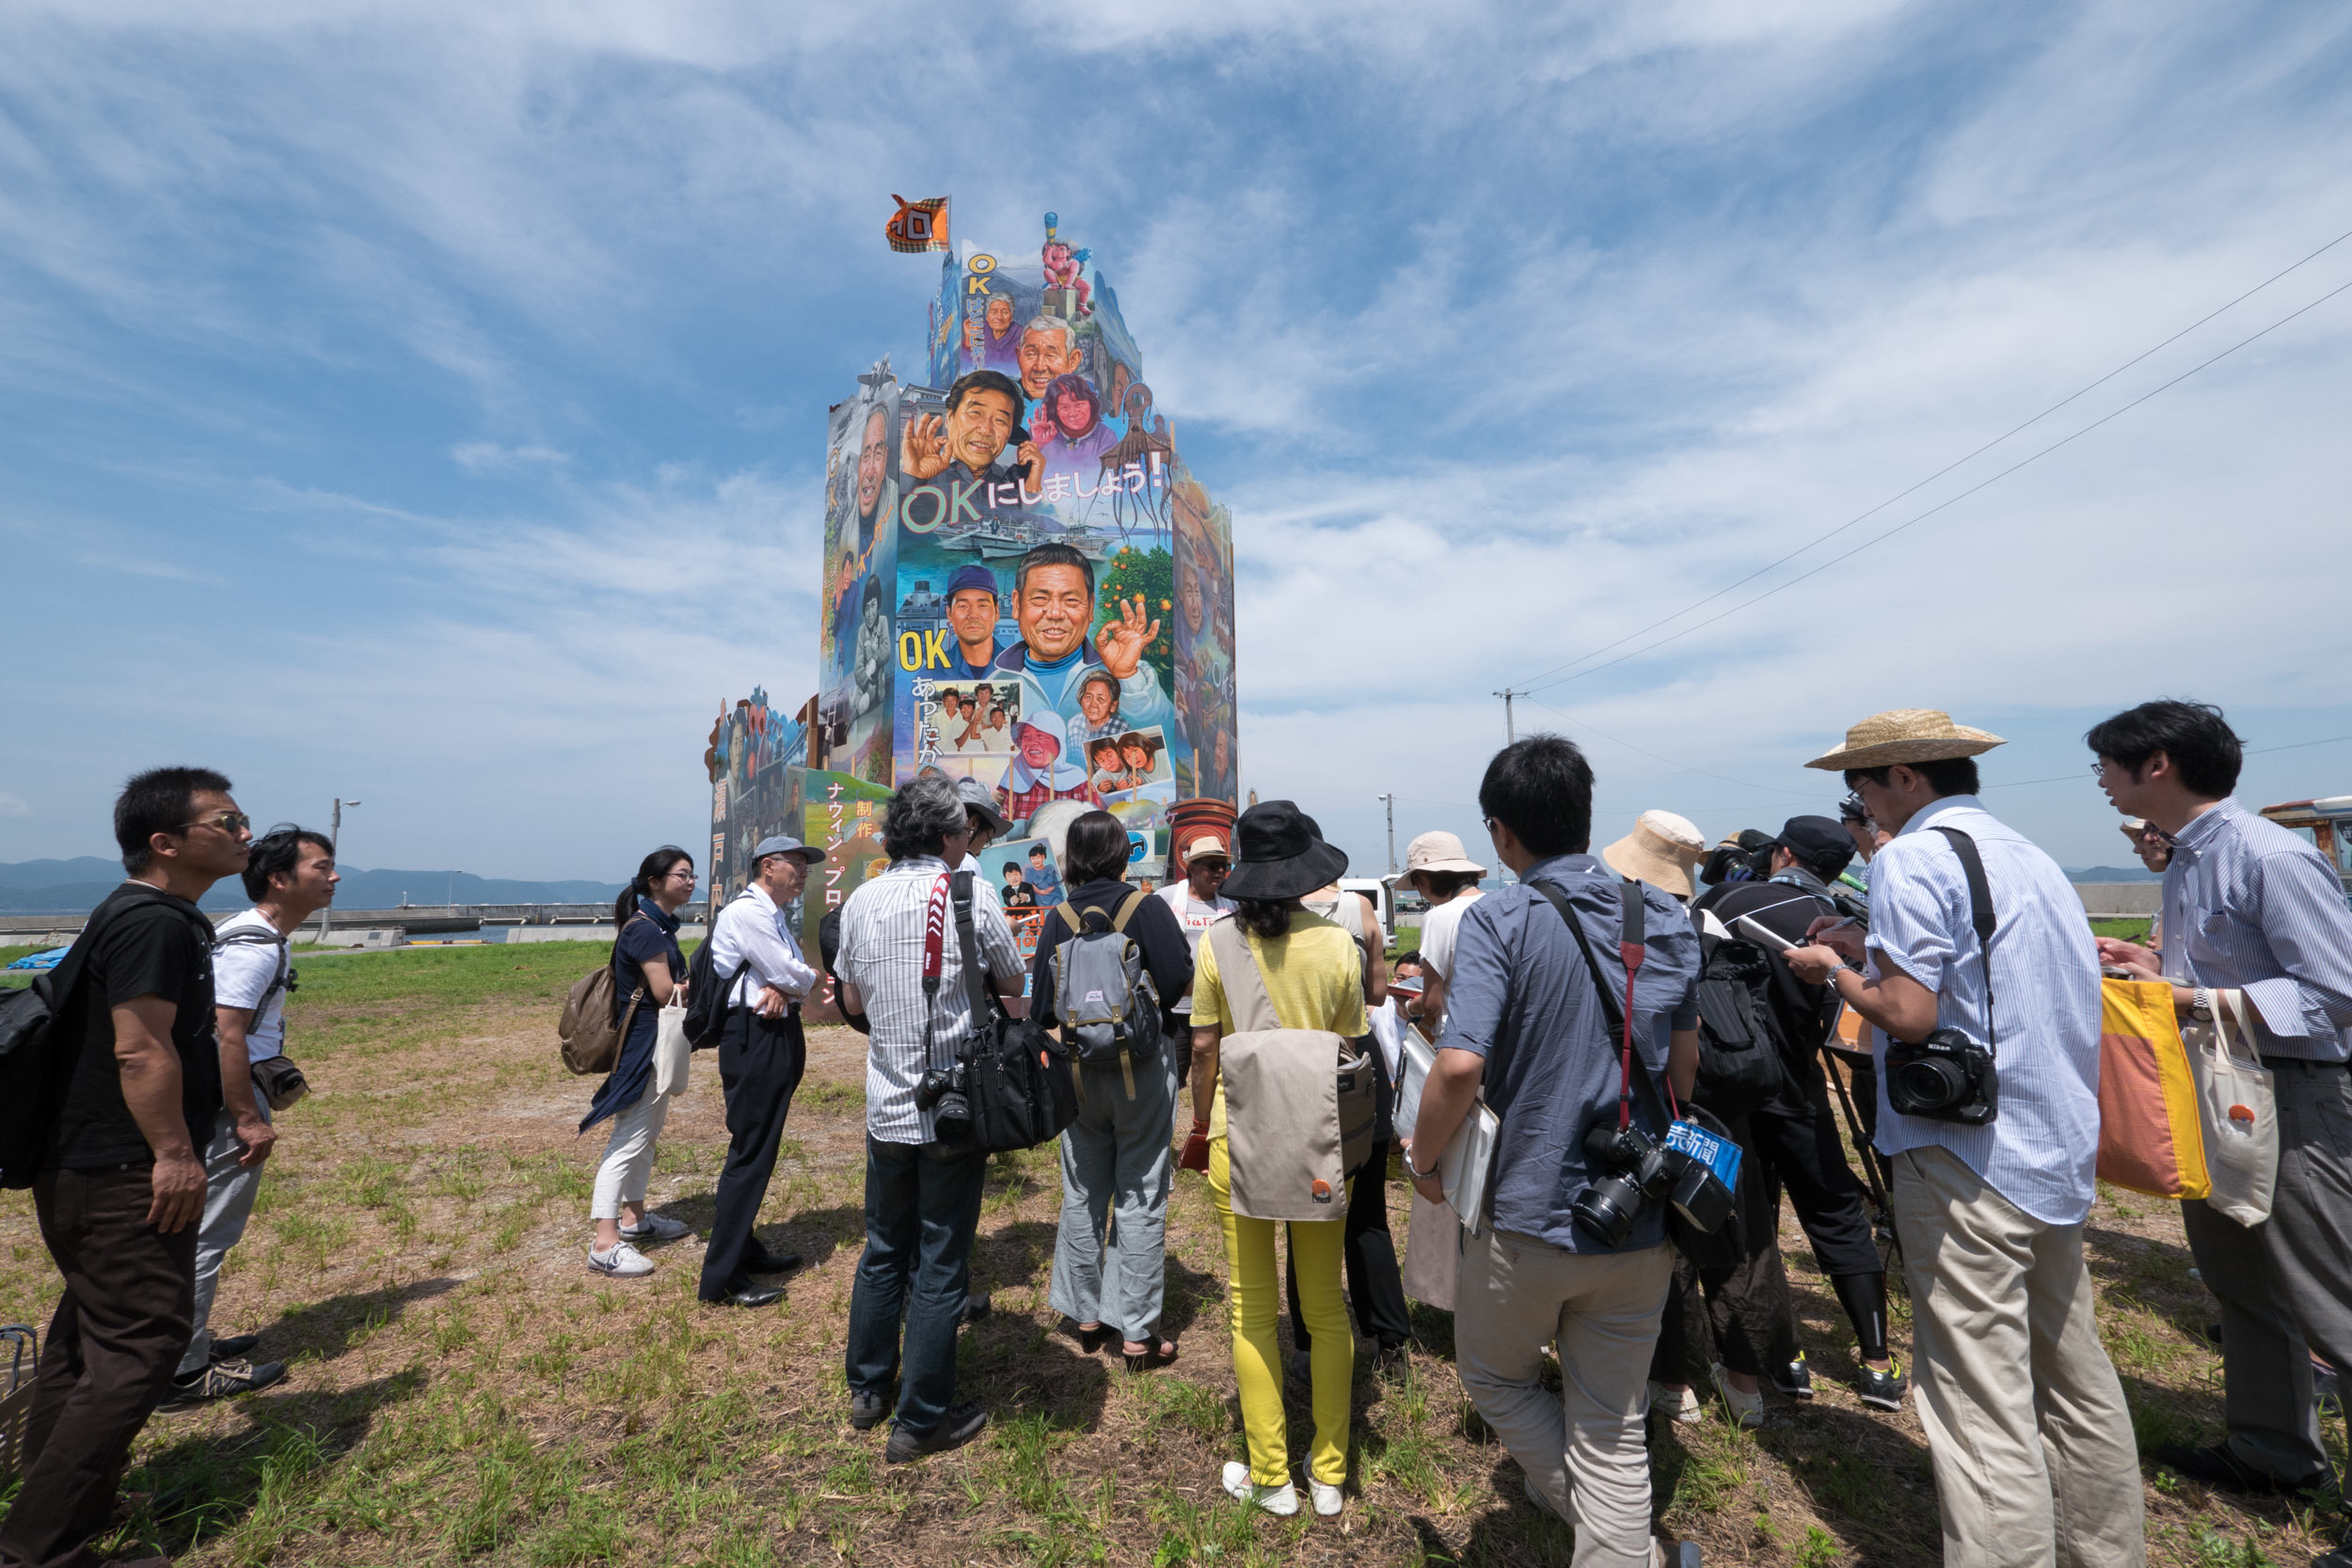 ナウィン・ラワンチャイクン(Navin Rawanchaikul) OK Tower, 2016 Installation view at Nishiura village, Megijima, Japan Photo by Navin Production